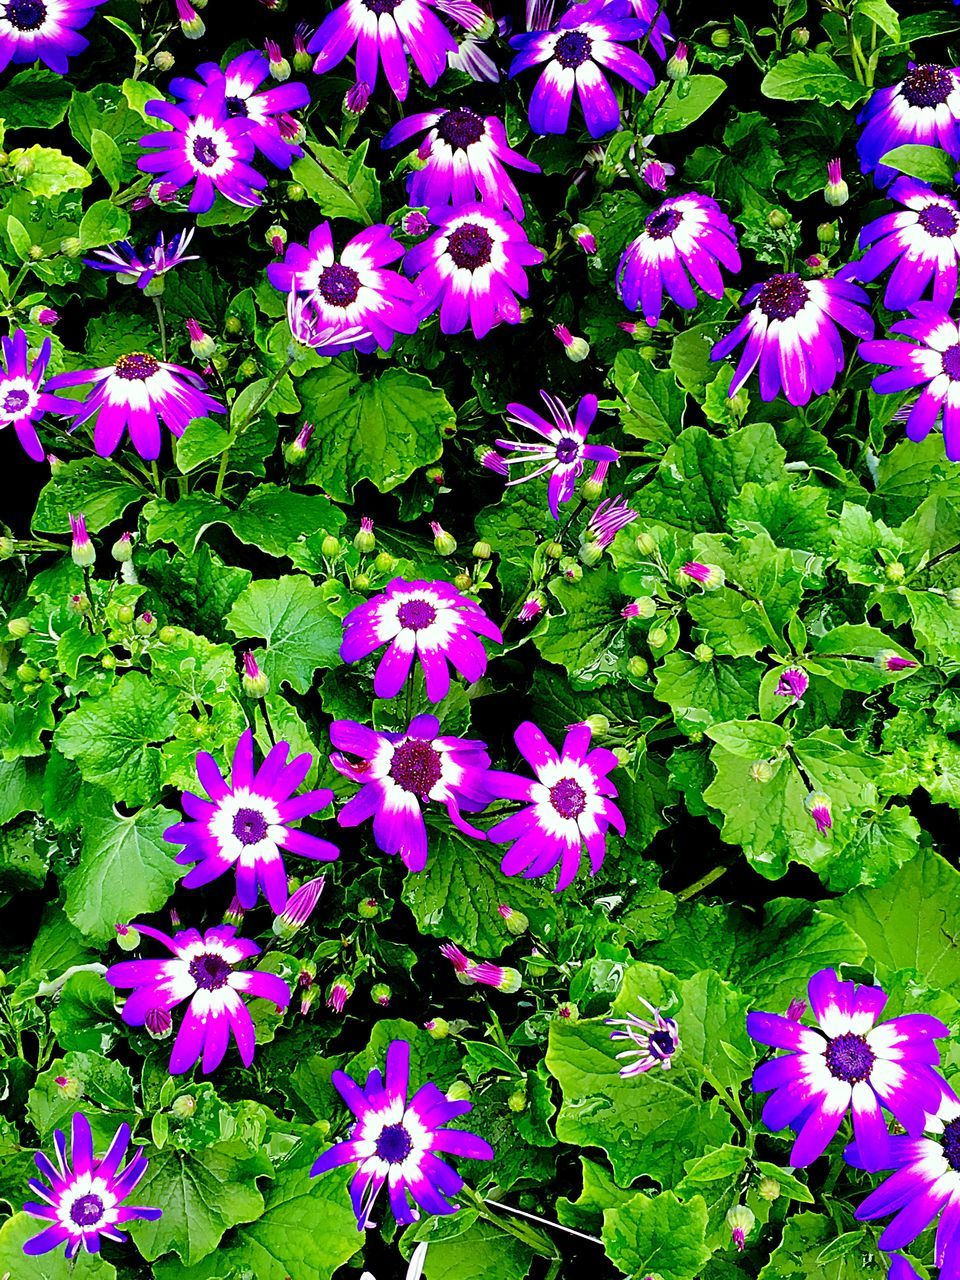 flower, growth, beauty in nature, green color, nature, plant, fragility, outdoors, purple, leaf, day, high angle view, petal, no people, blooming, freshness, flower head